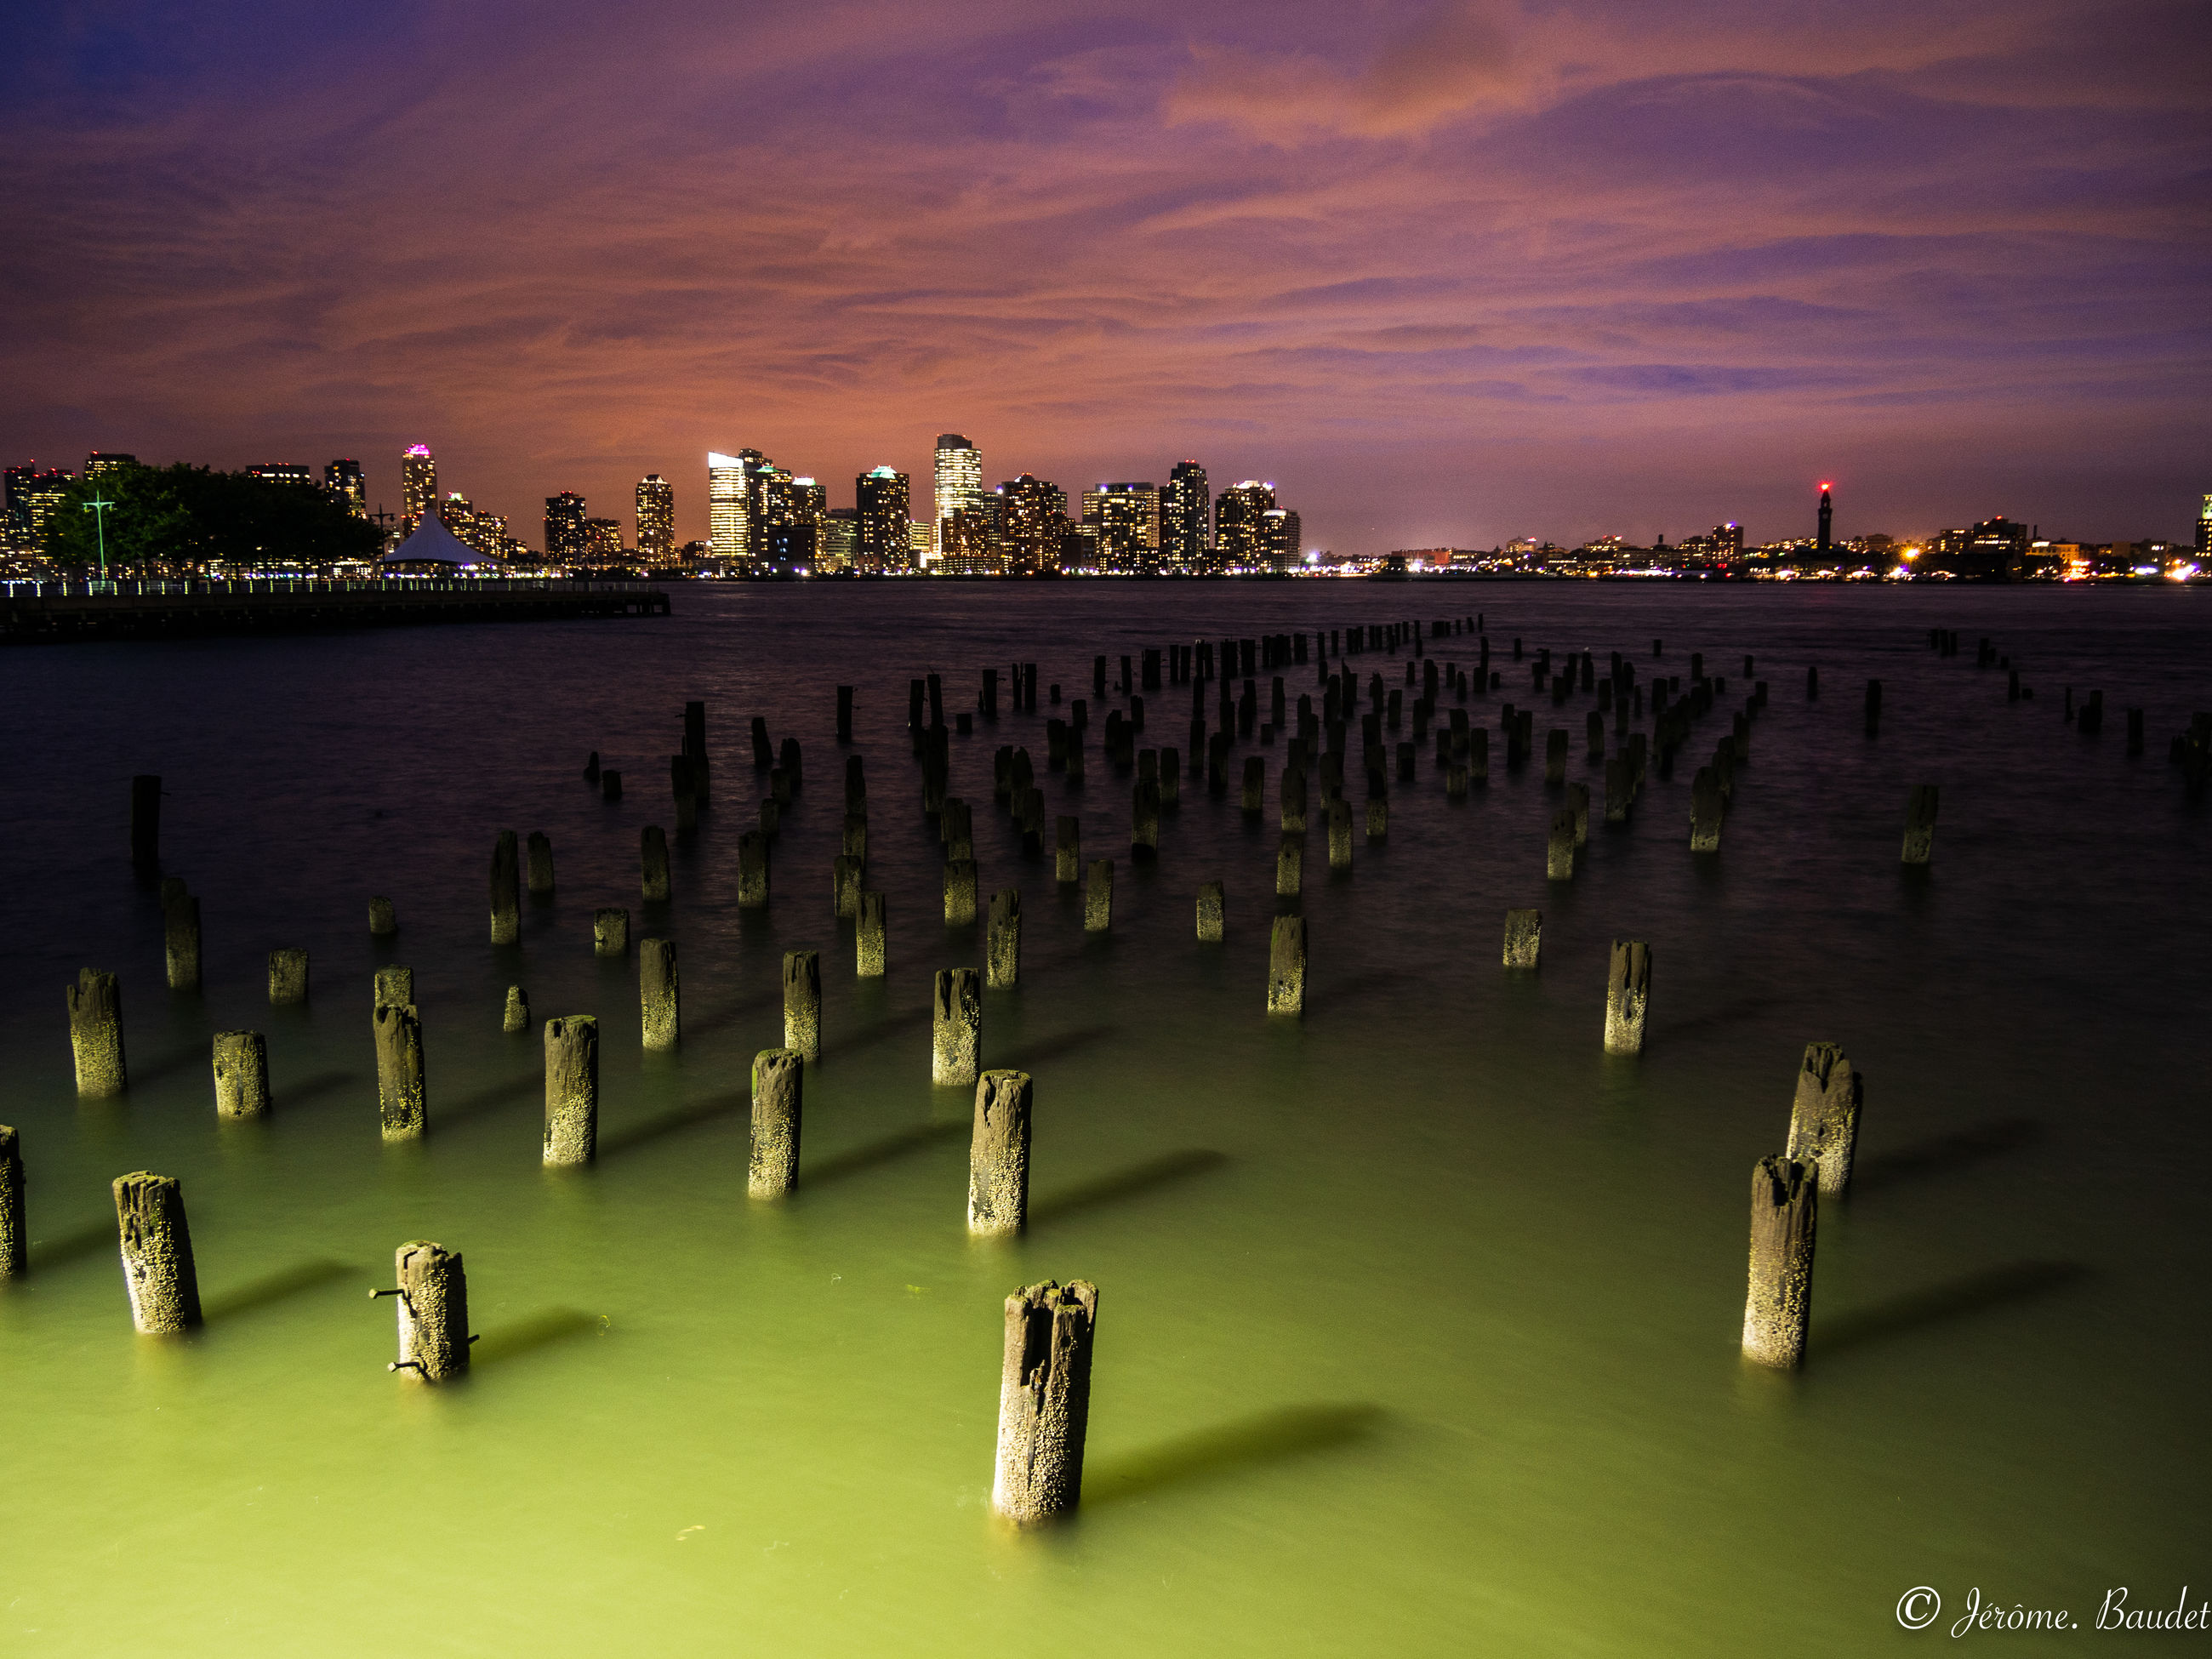 water, architecture, sky, built structure, sunset, building exterior, nature, waterfront, sea, city, no people, building, cloud - sky, office building exterior, illuminated, urban skyline, post, skyscraper, scenics - nature, wooden post, outdoors, cityscape